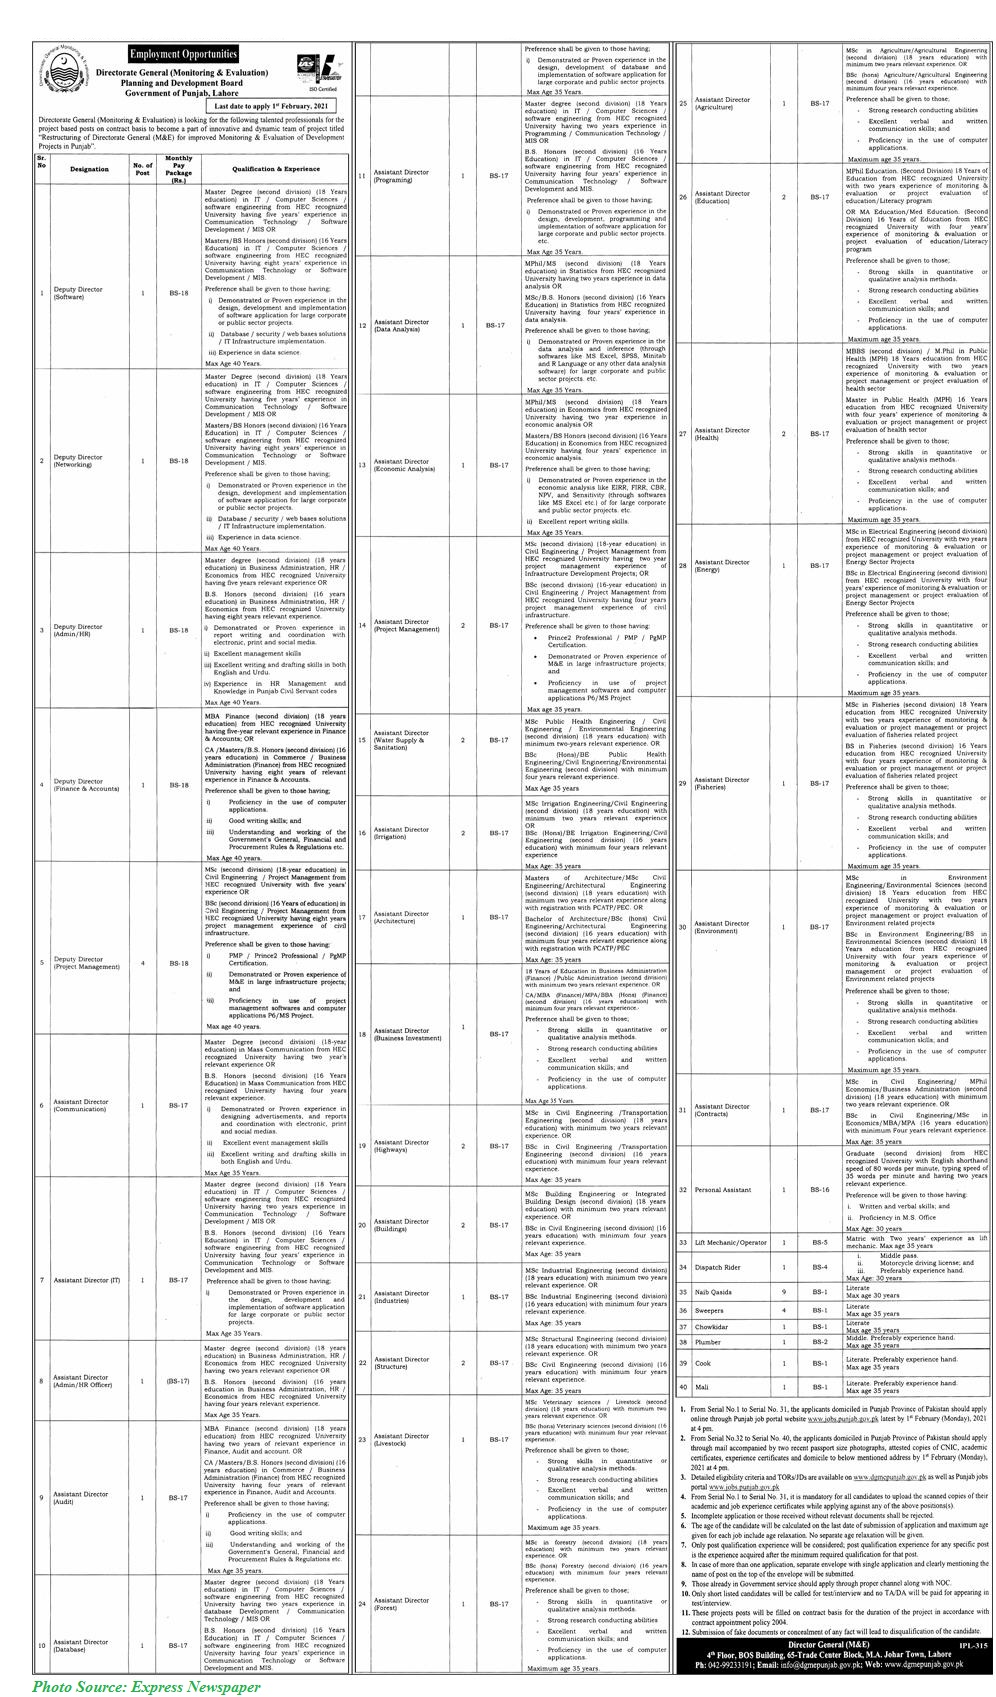 Planning and Development Board Govt of Punjab Jobs January 2021 Apply Online